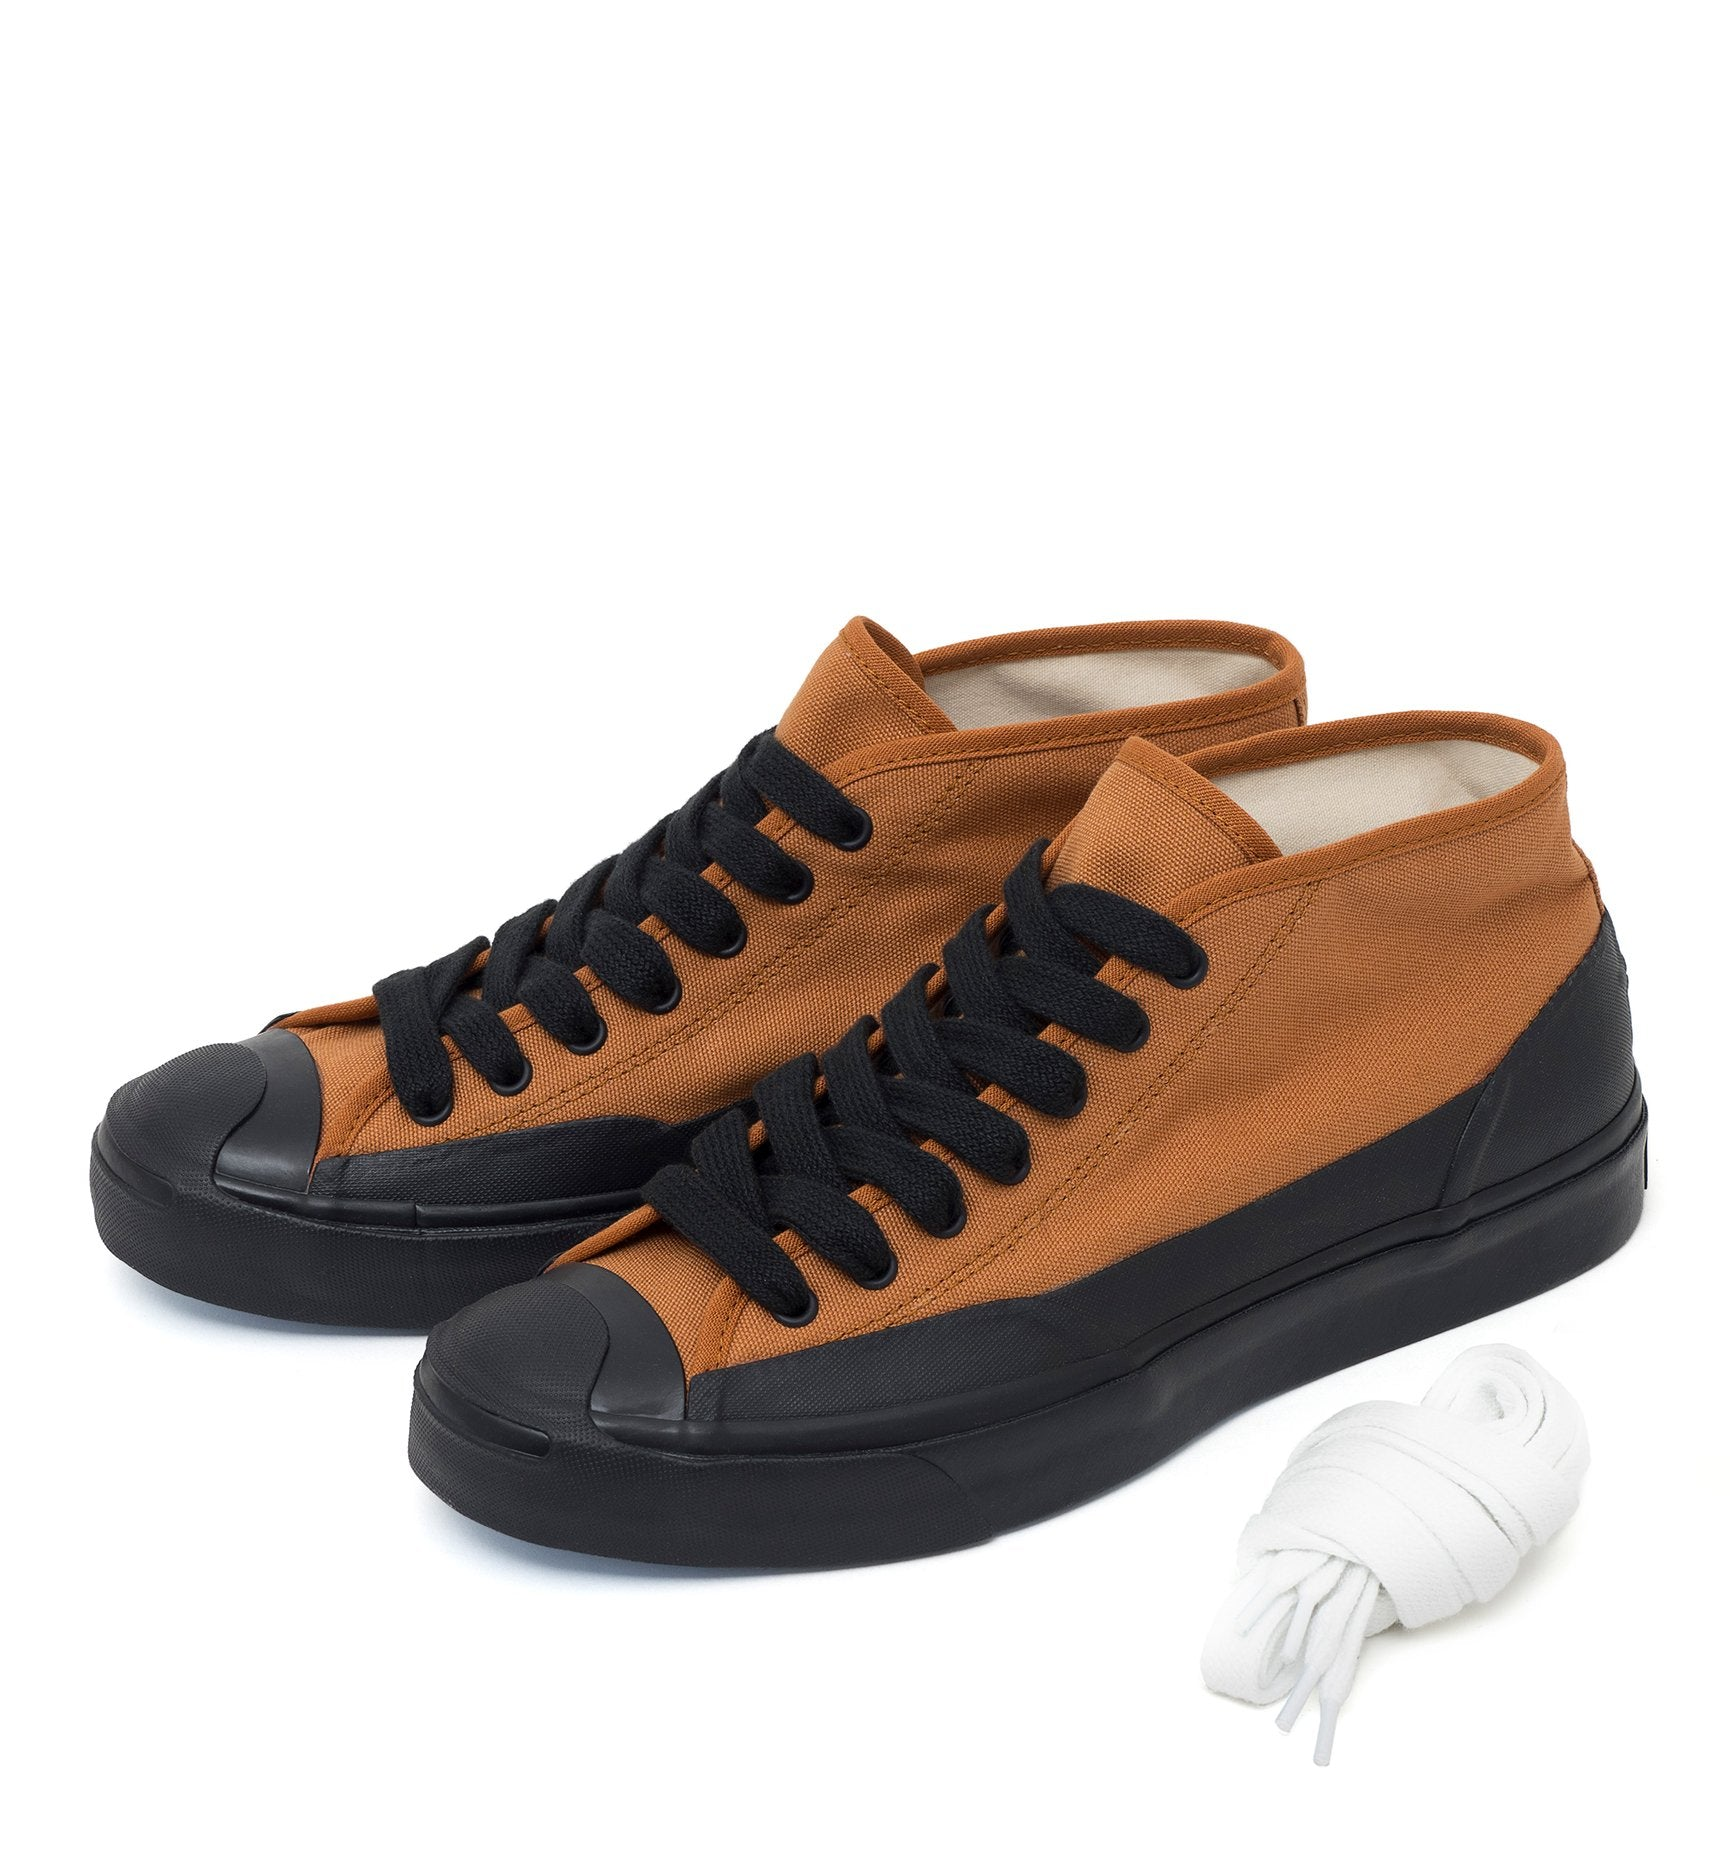 Converse x A$AP Nast JP Chukka Mid - Burnt Orange